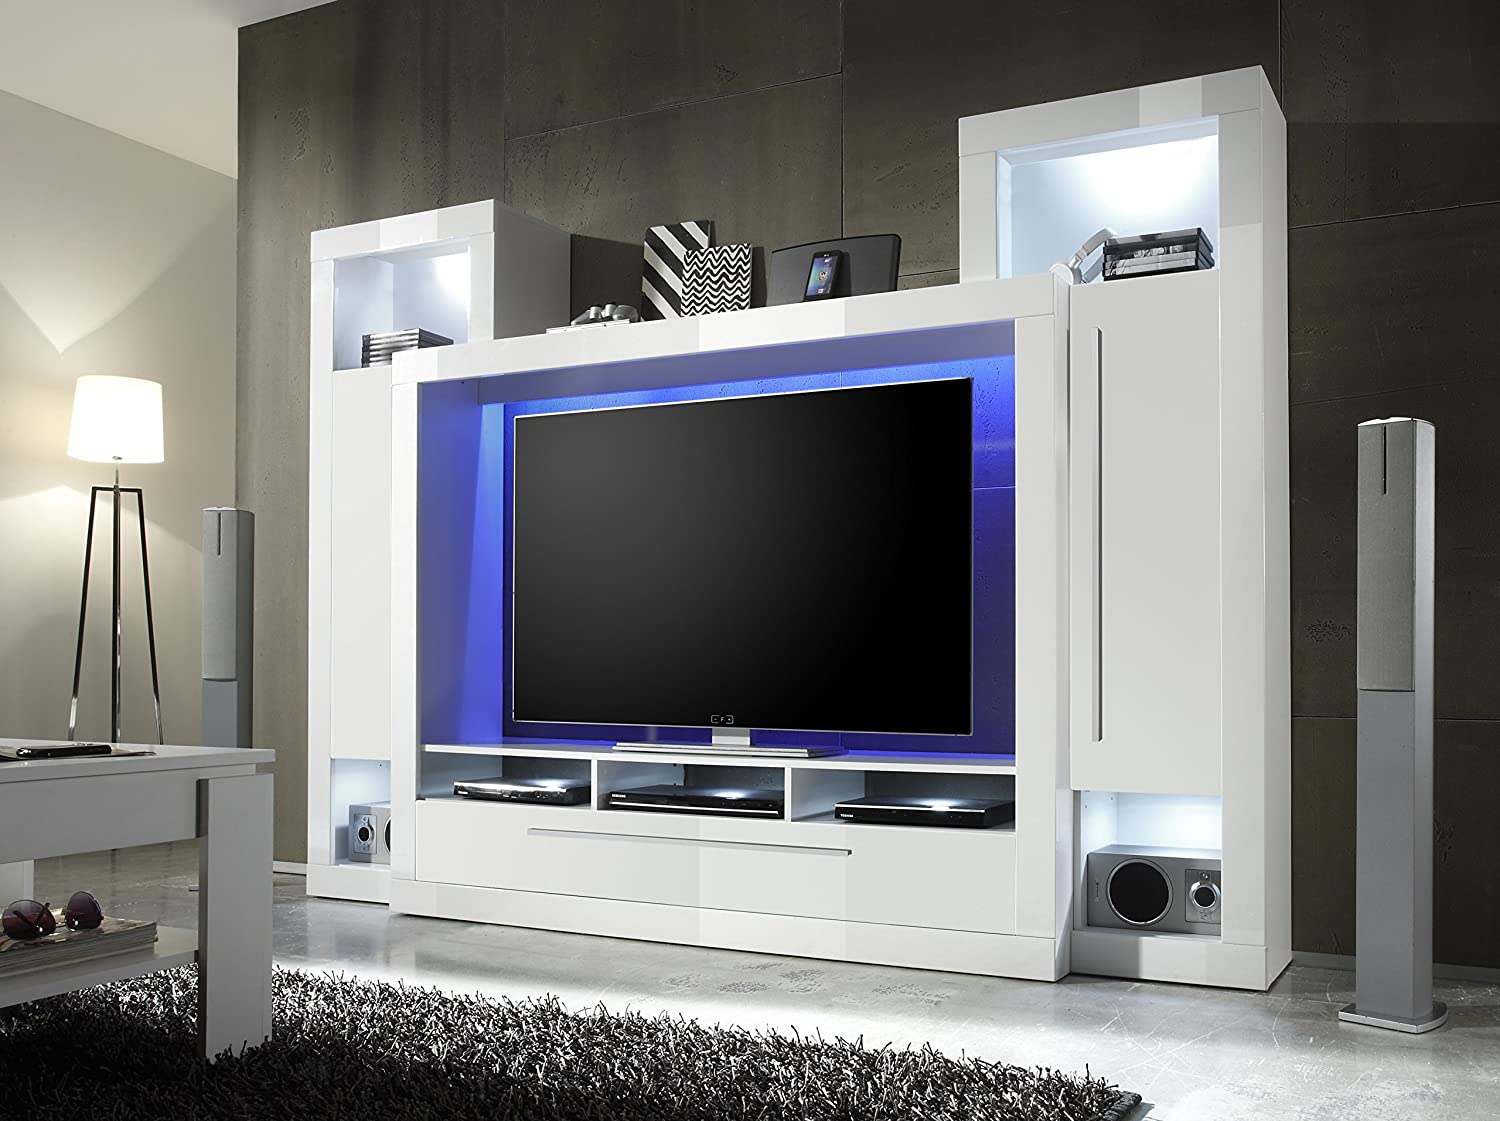 Lcd Tv Furniture For Living Room Furnline Medox High Gloss Tv Stand Wall Unit Living Room Furniture